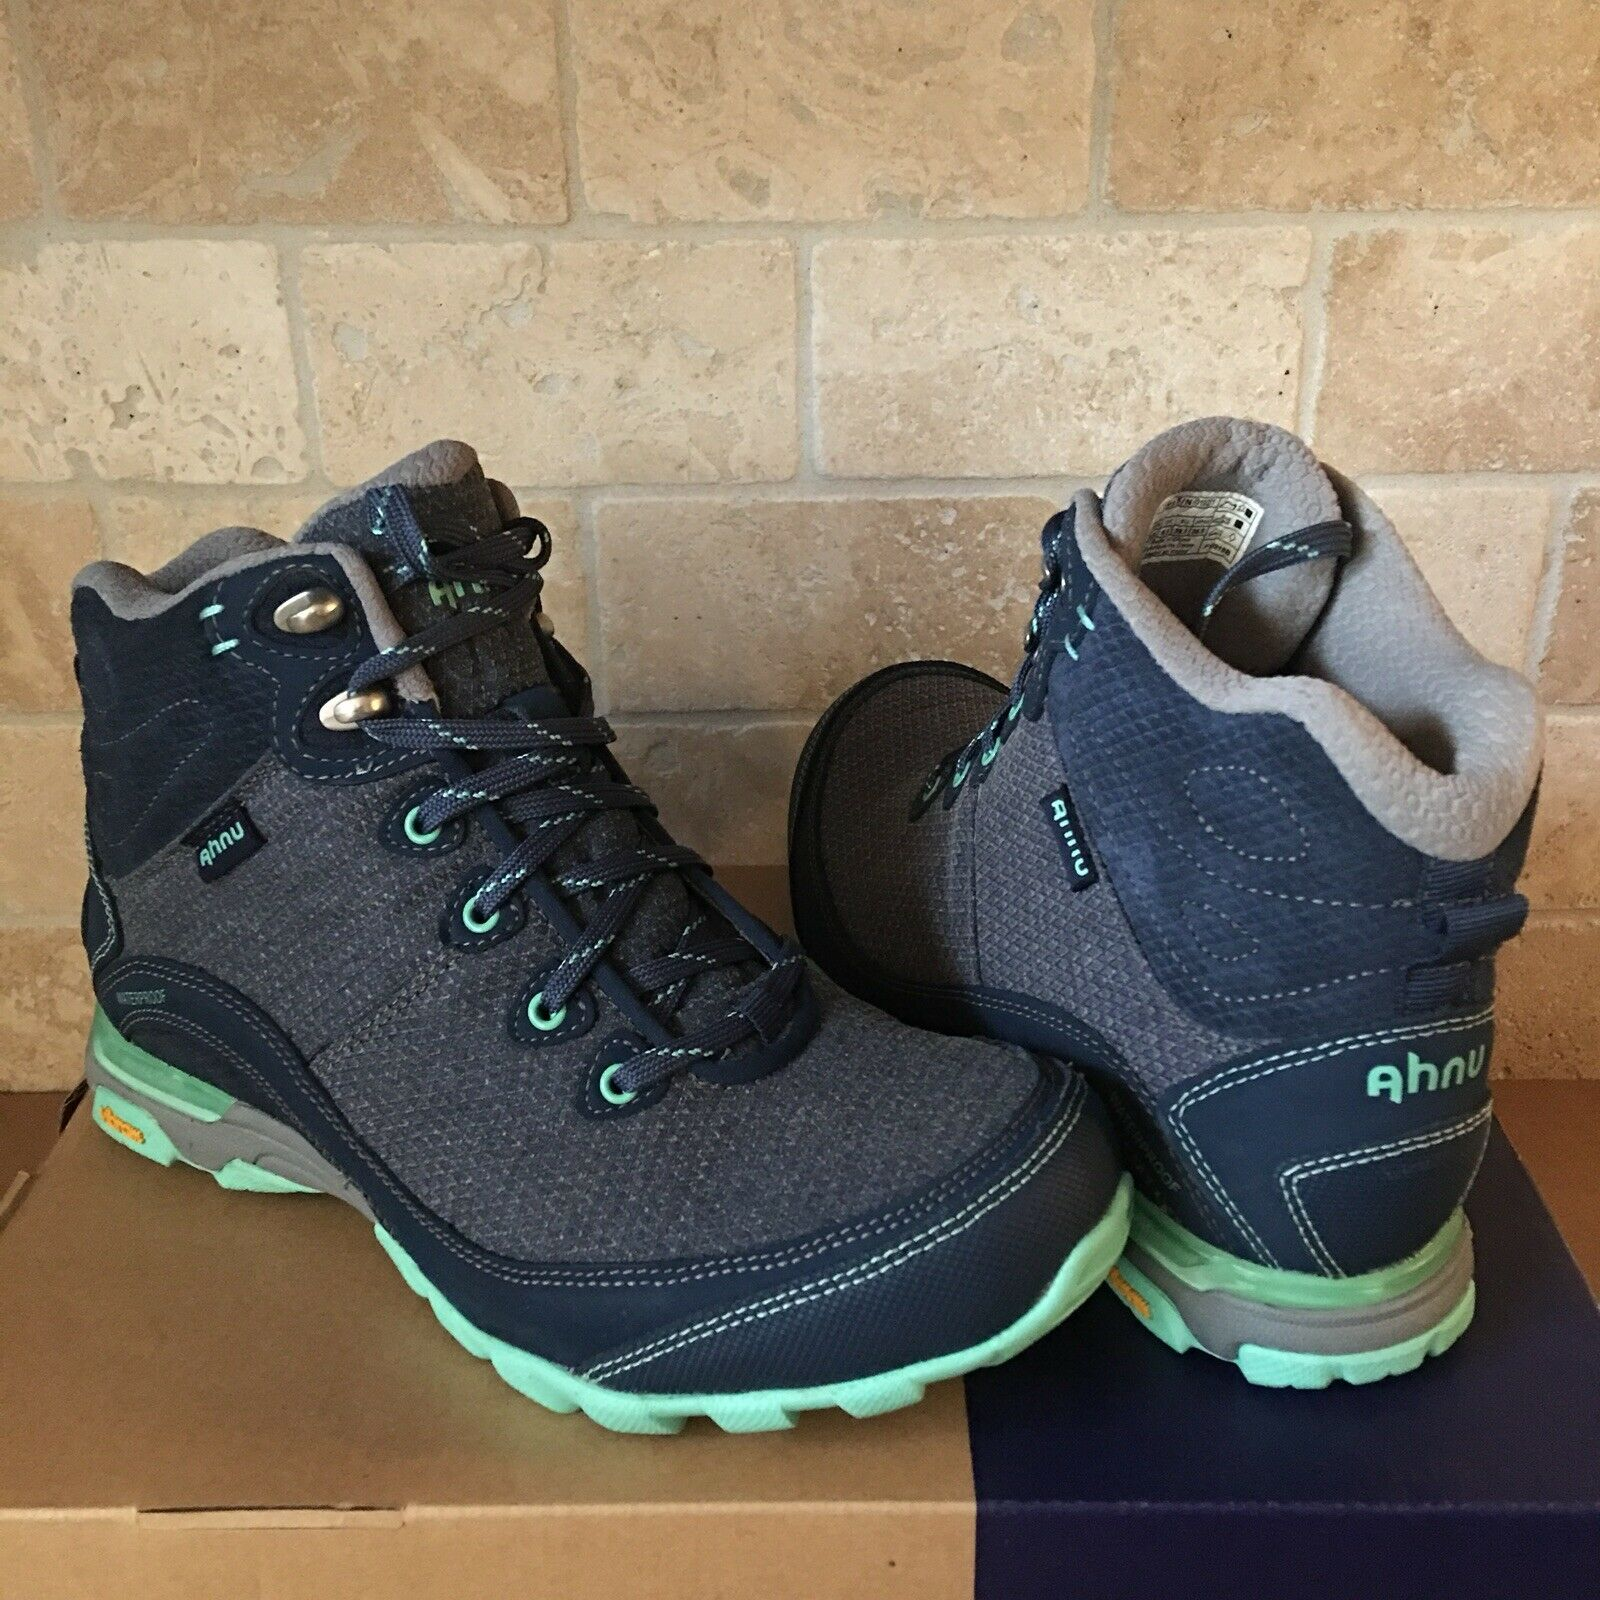 AHNU Sugarpine Insignia bluee Waterproof Hiking Trail Boots shoes Size 9 Womens